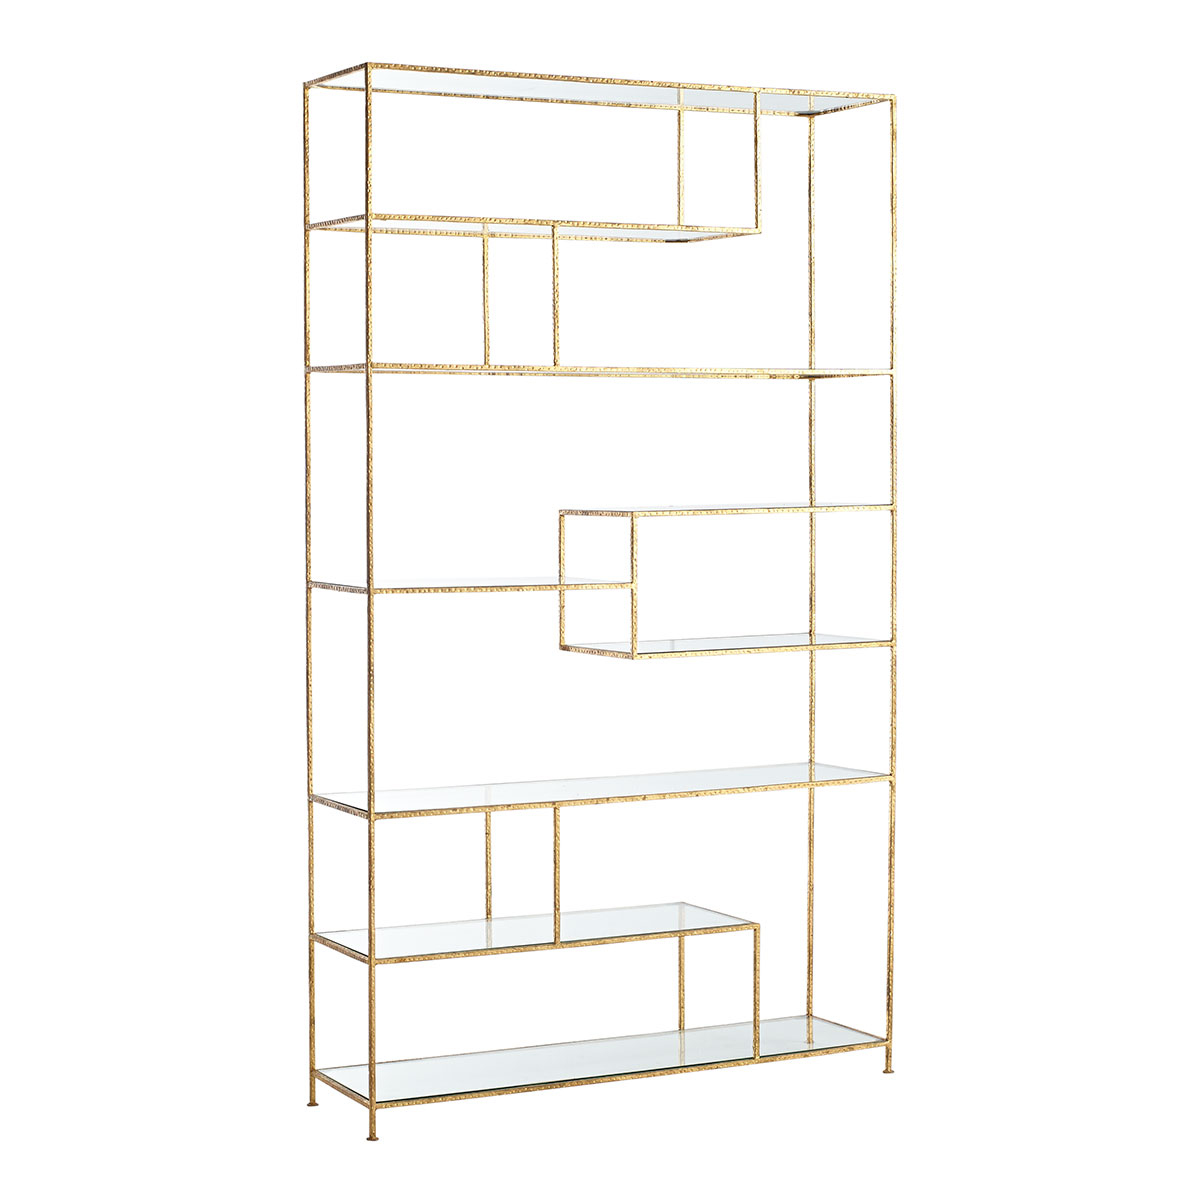 Gold Open Shelving unit Sumptuous Living Home Decor